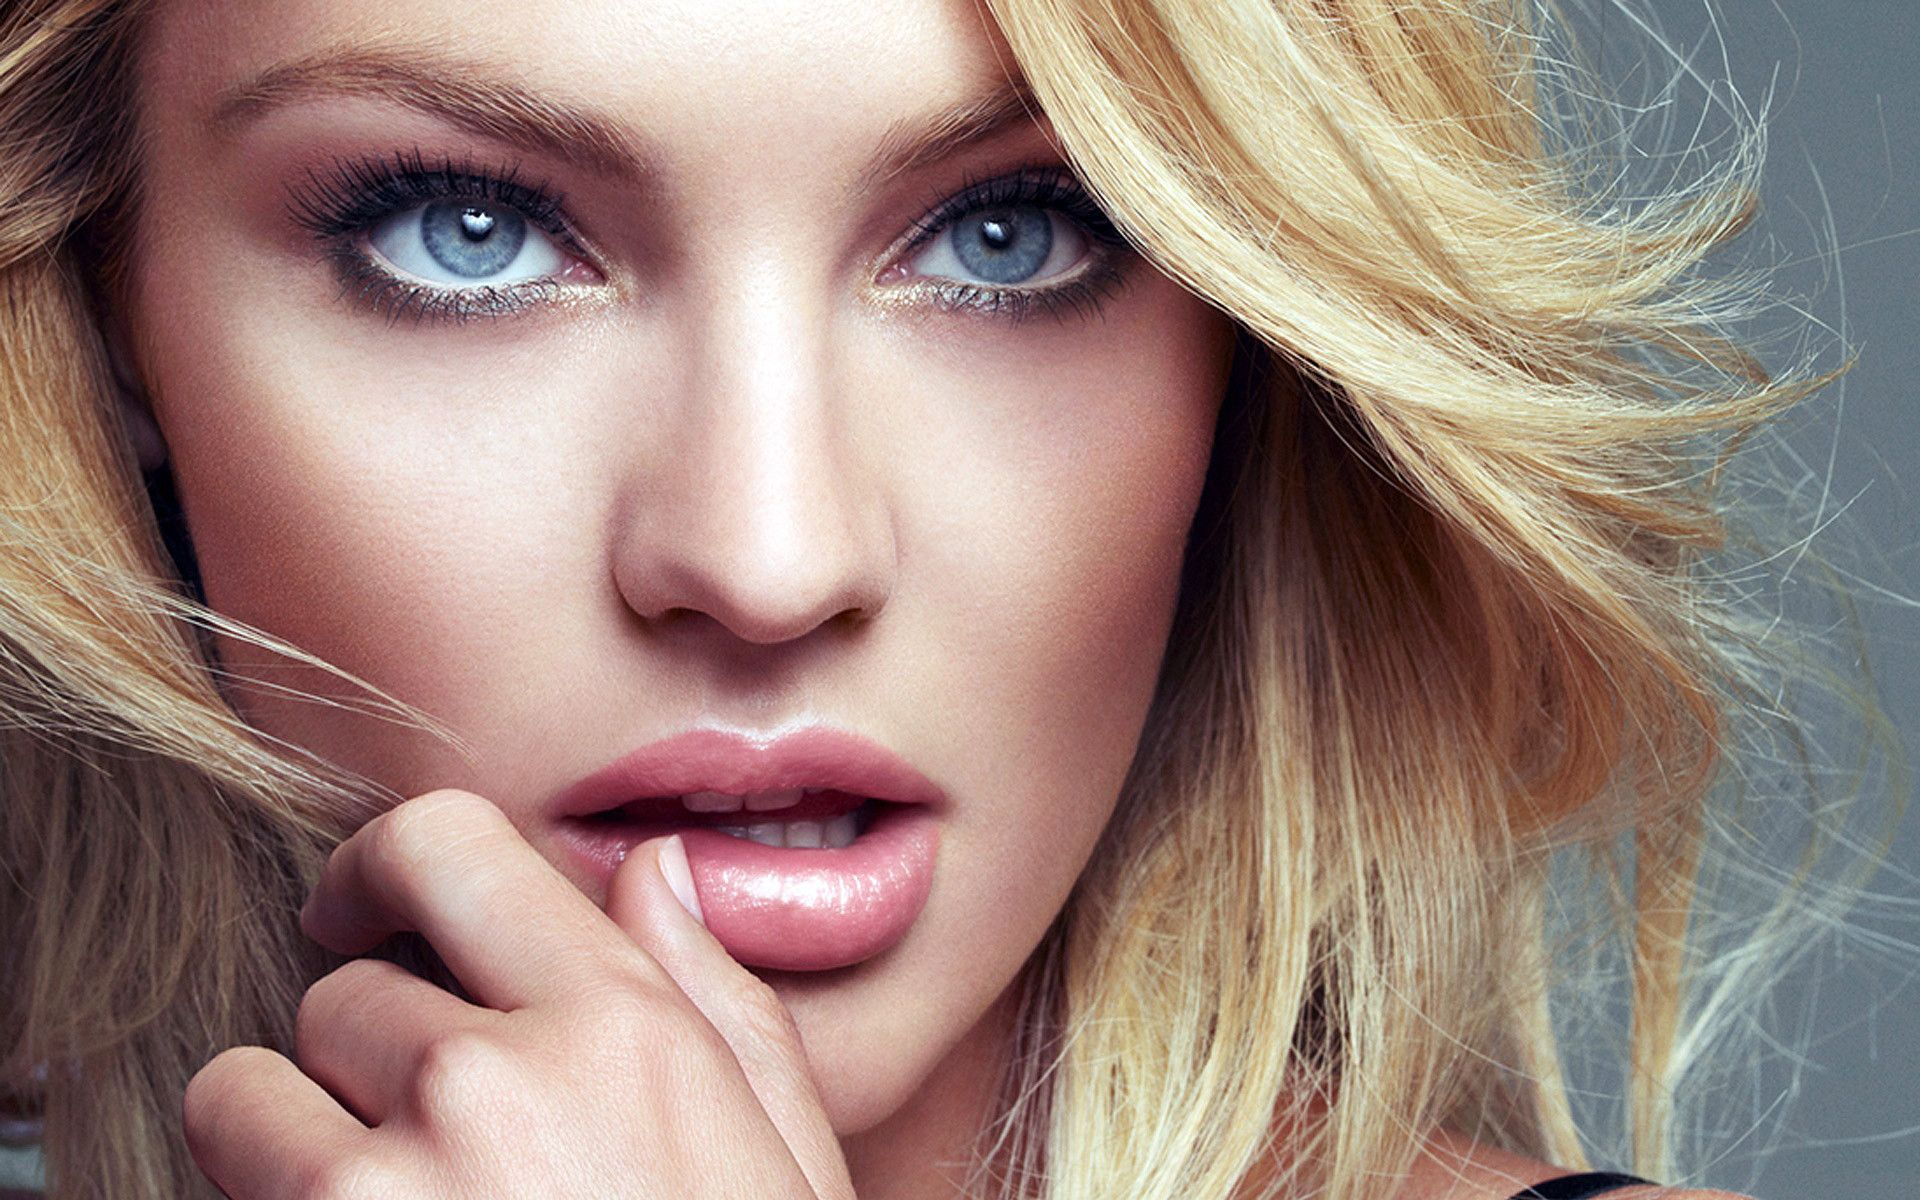 sexy lips girl images